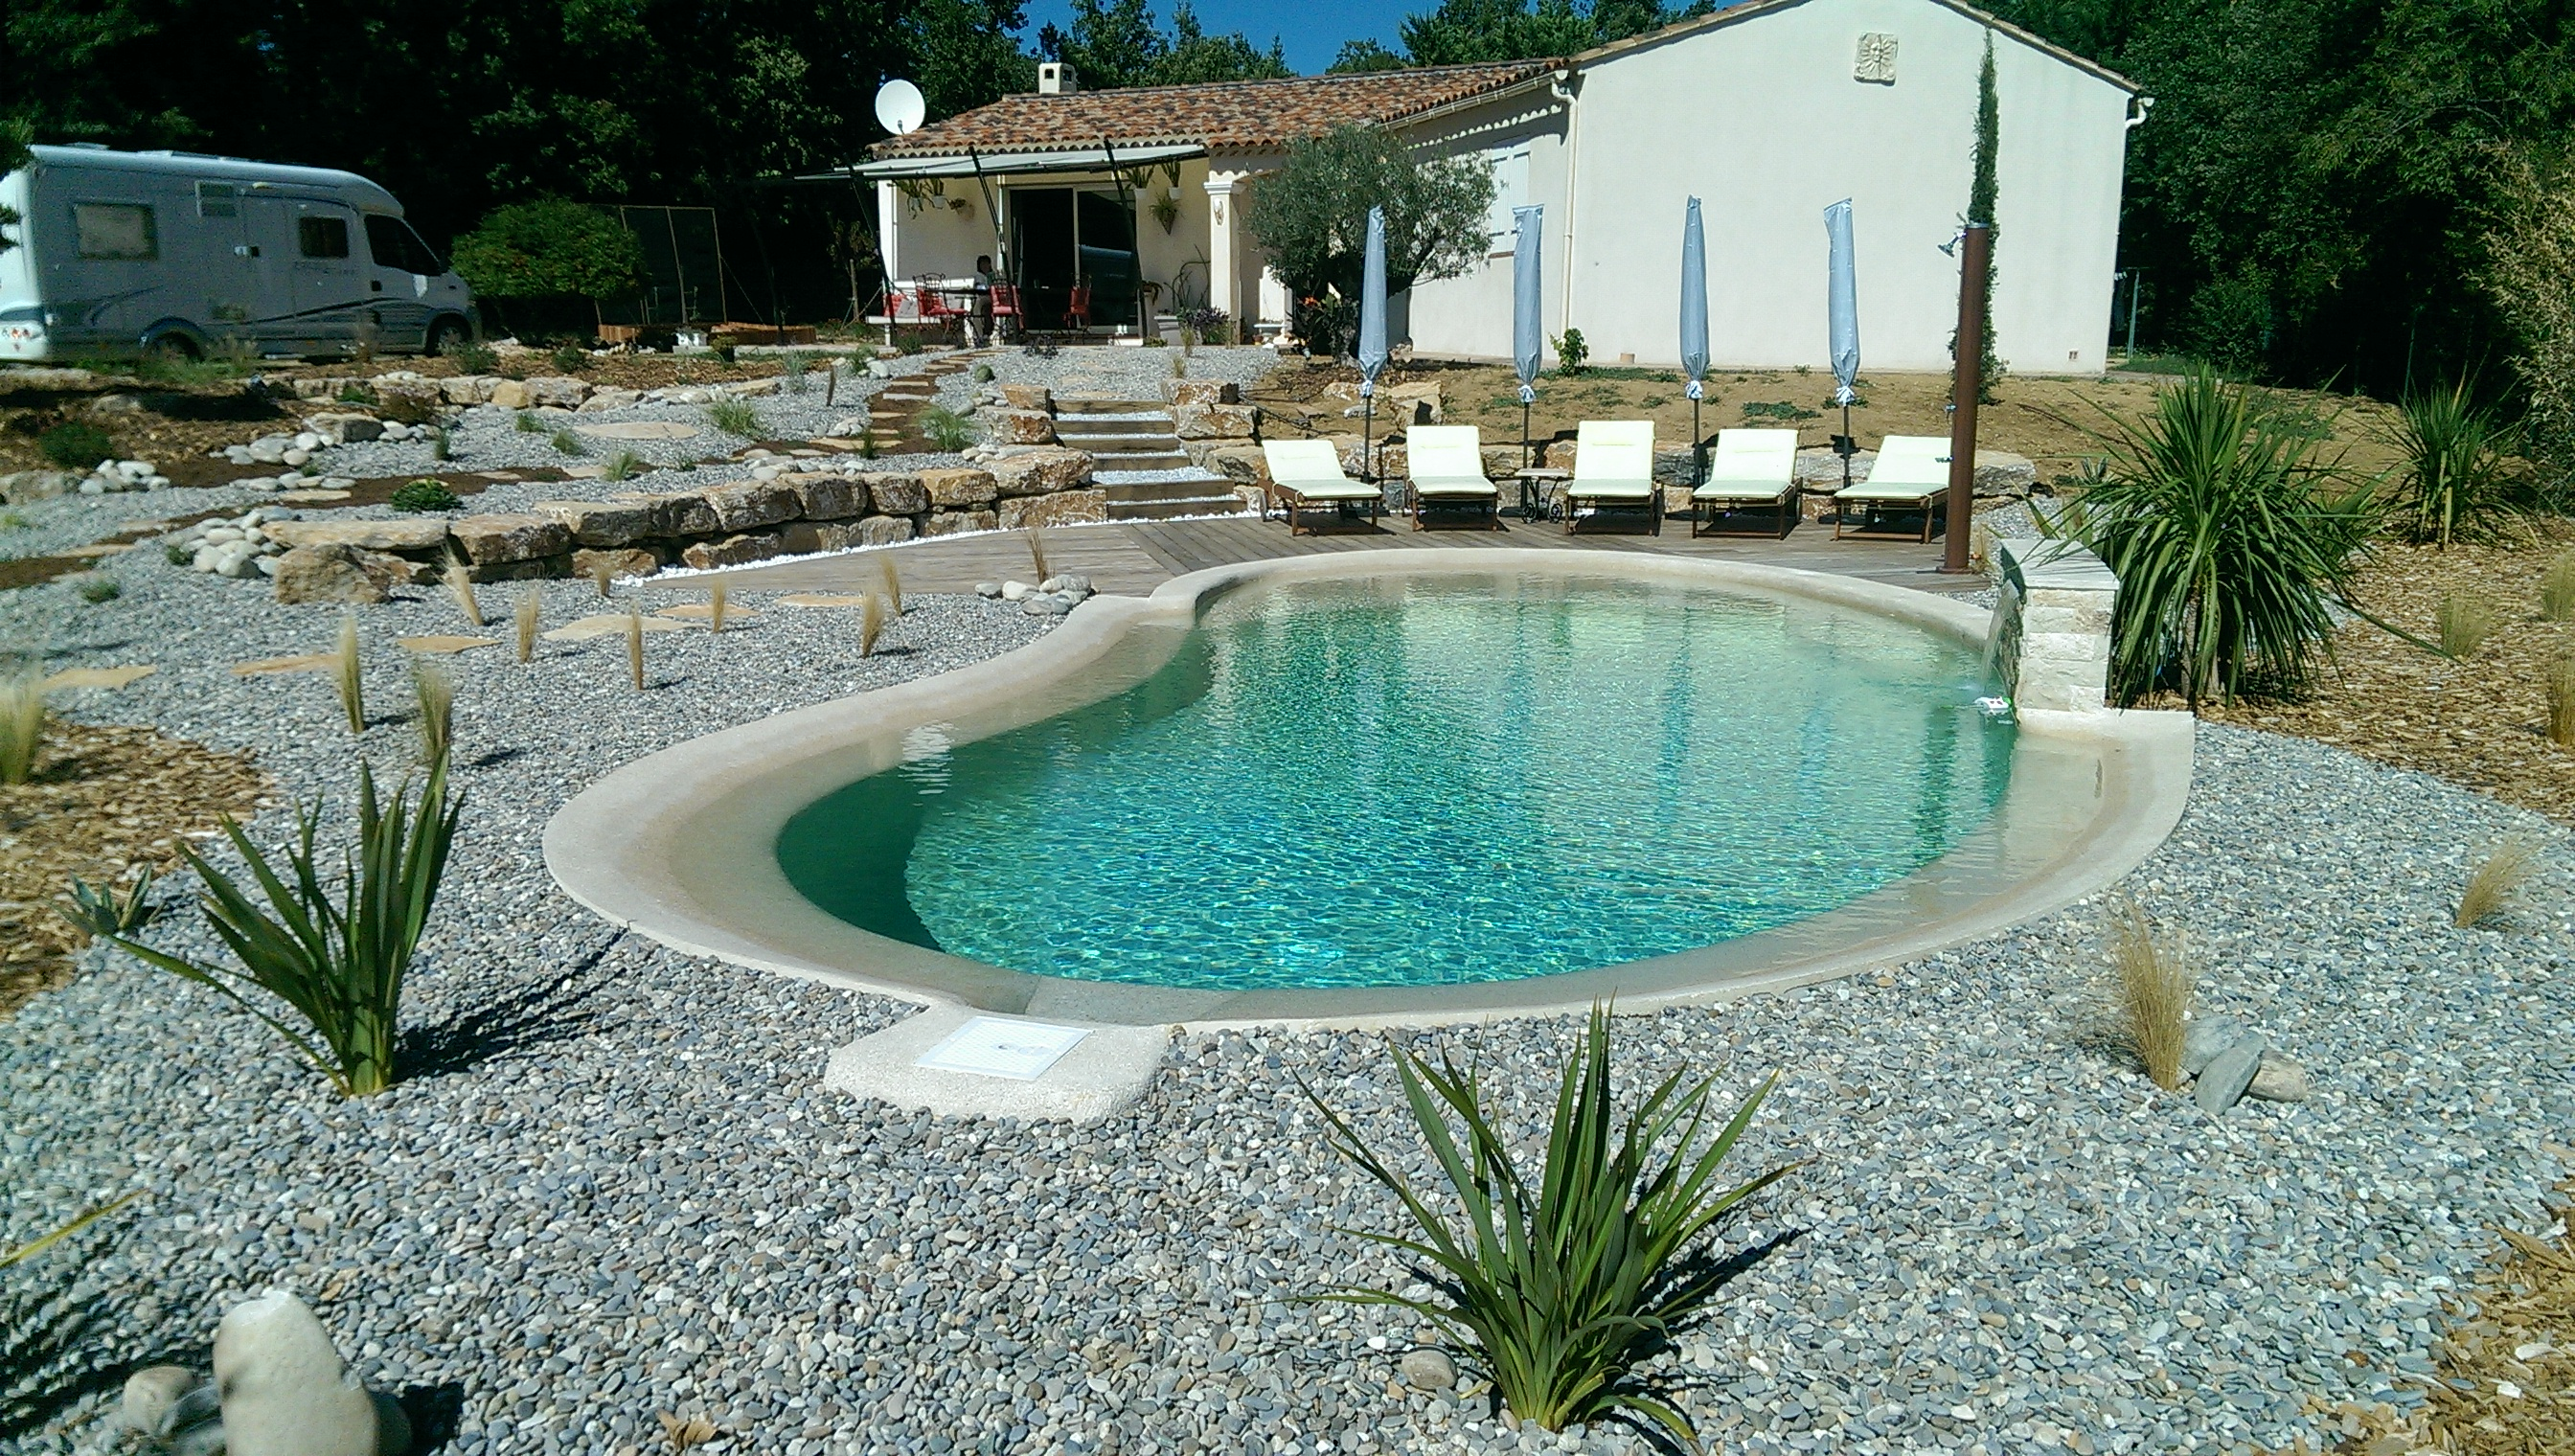 Am nagement autour d 39 une piscine brignoles var fr jus draguignan for Amenagement autour piscine